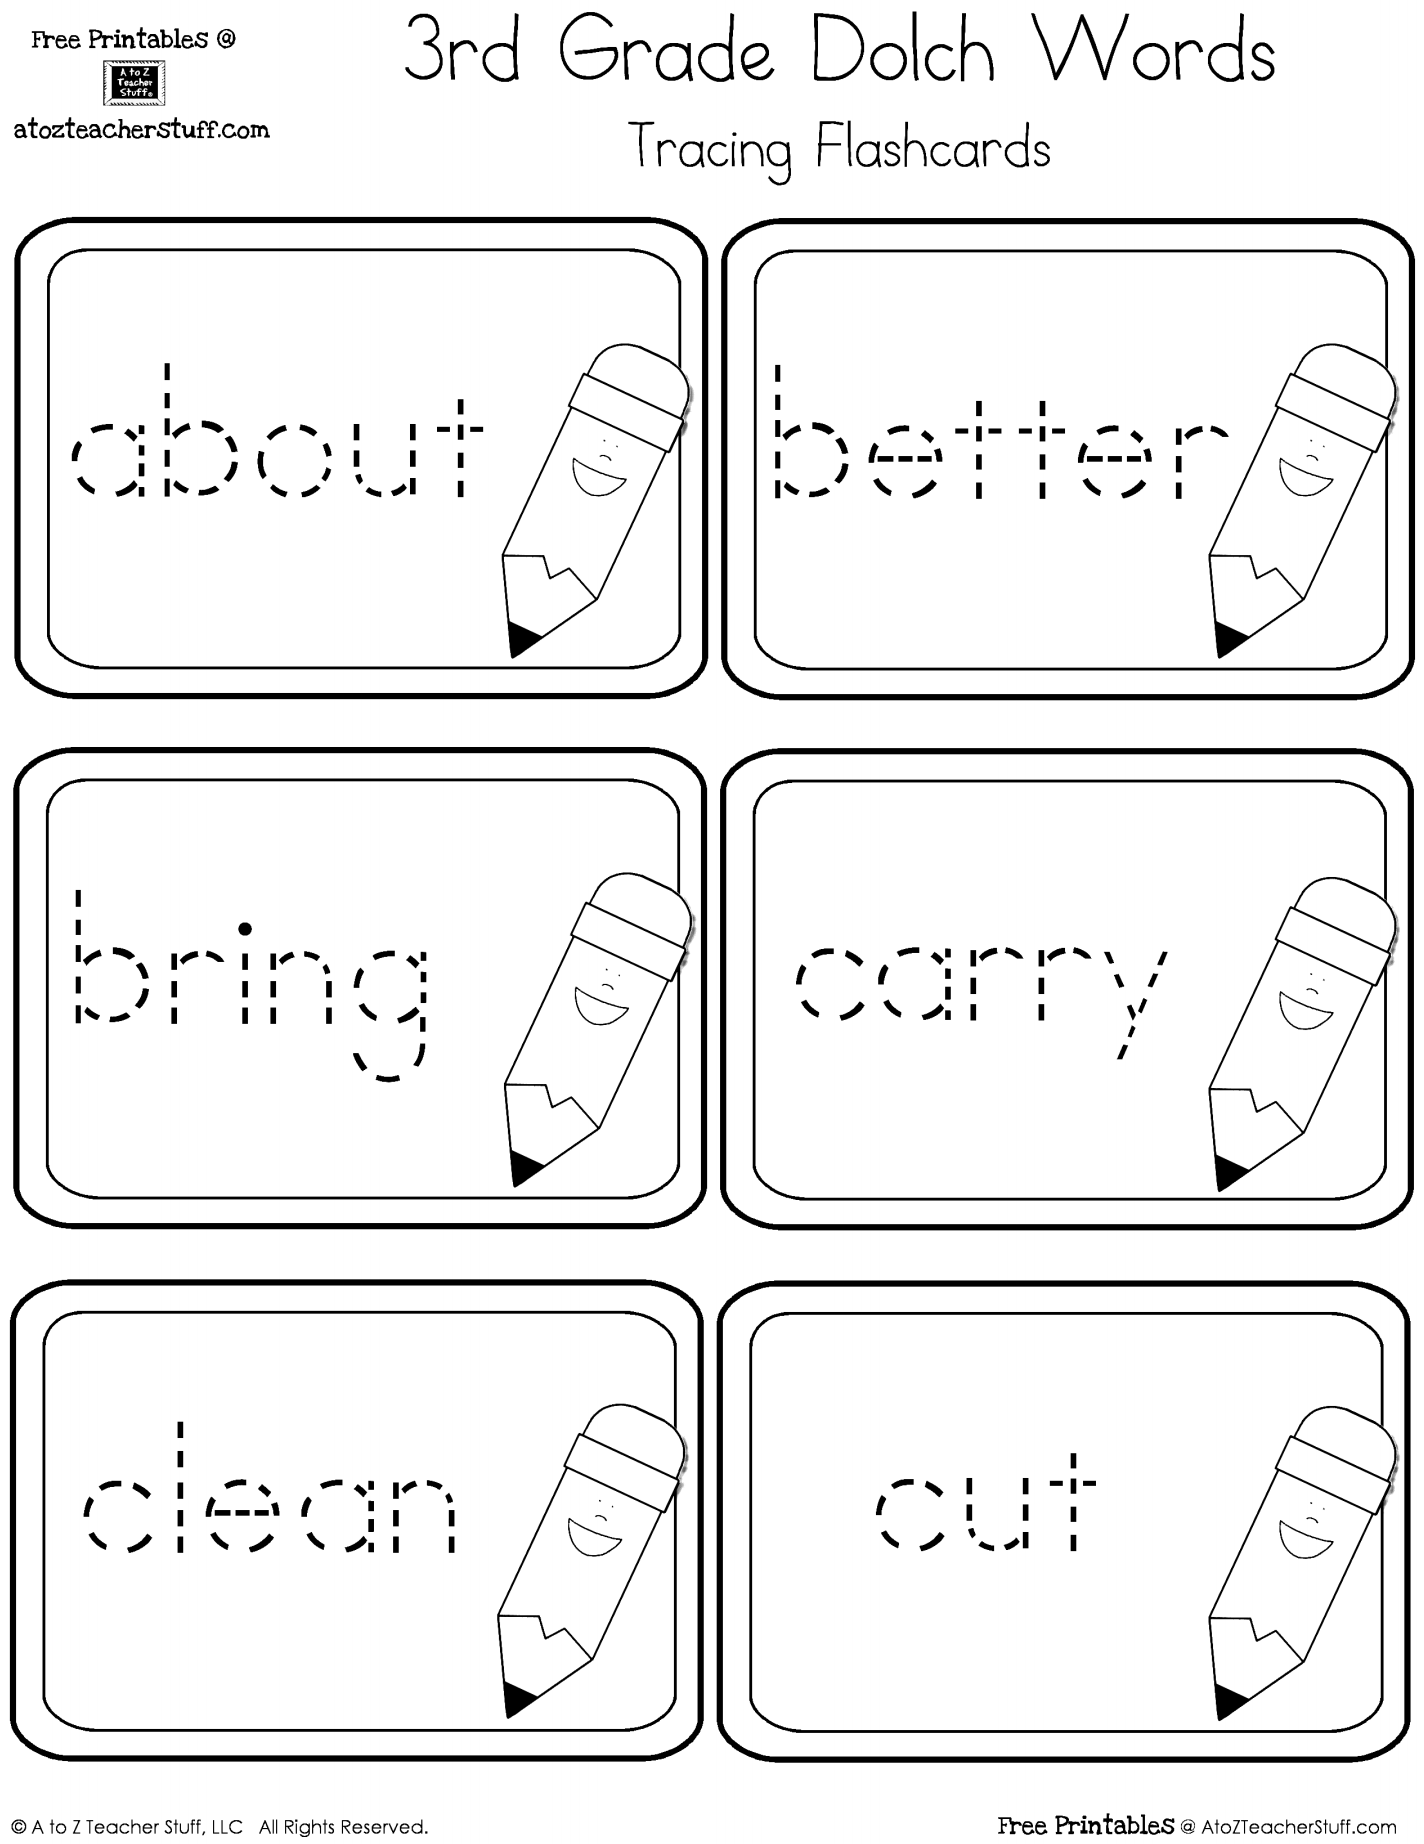 photograph regarding Printable Sight Word Cards referred to as 3rd Quality Dolch Sight Words and phrases Tracing Flashcards A towards Z